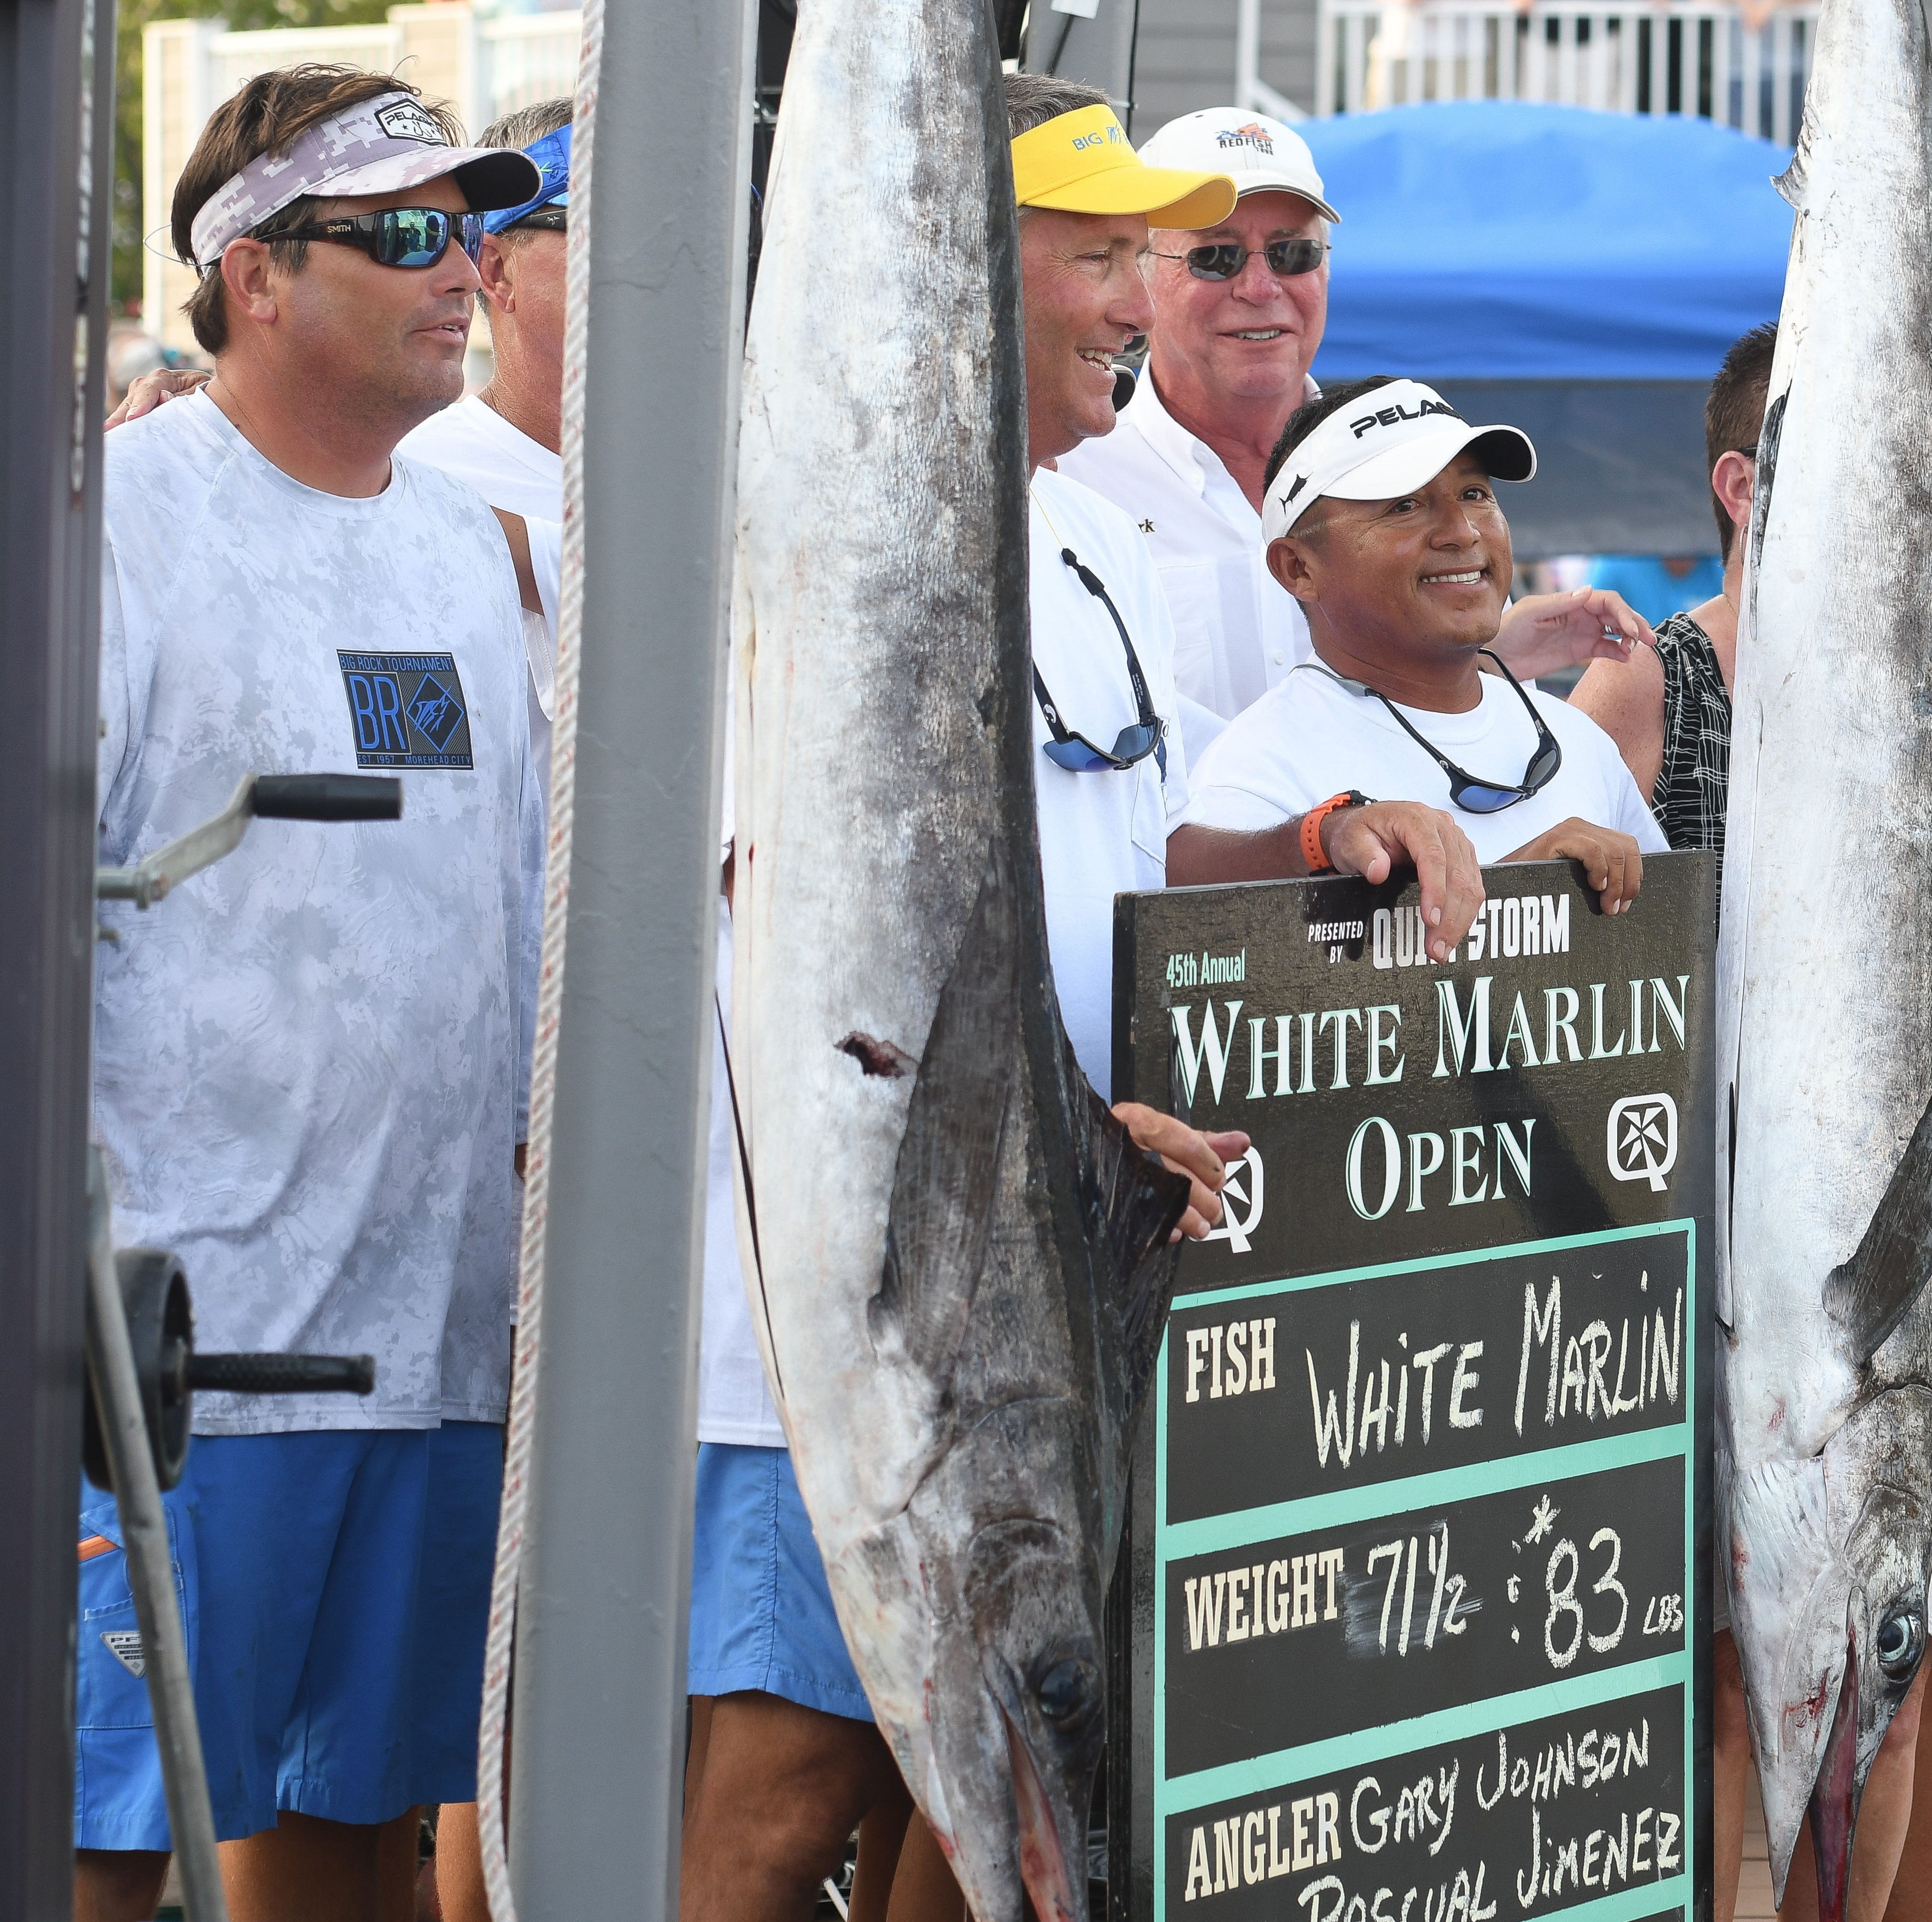 White Marlin Open Day 5: It's a tie at the top in weight